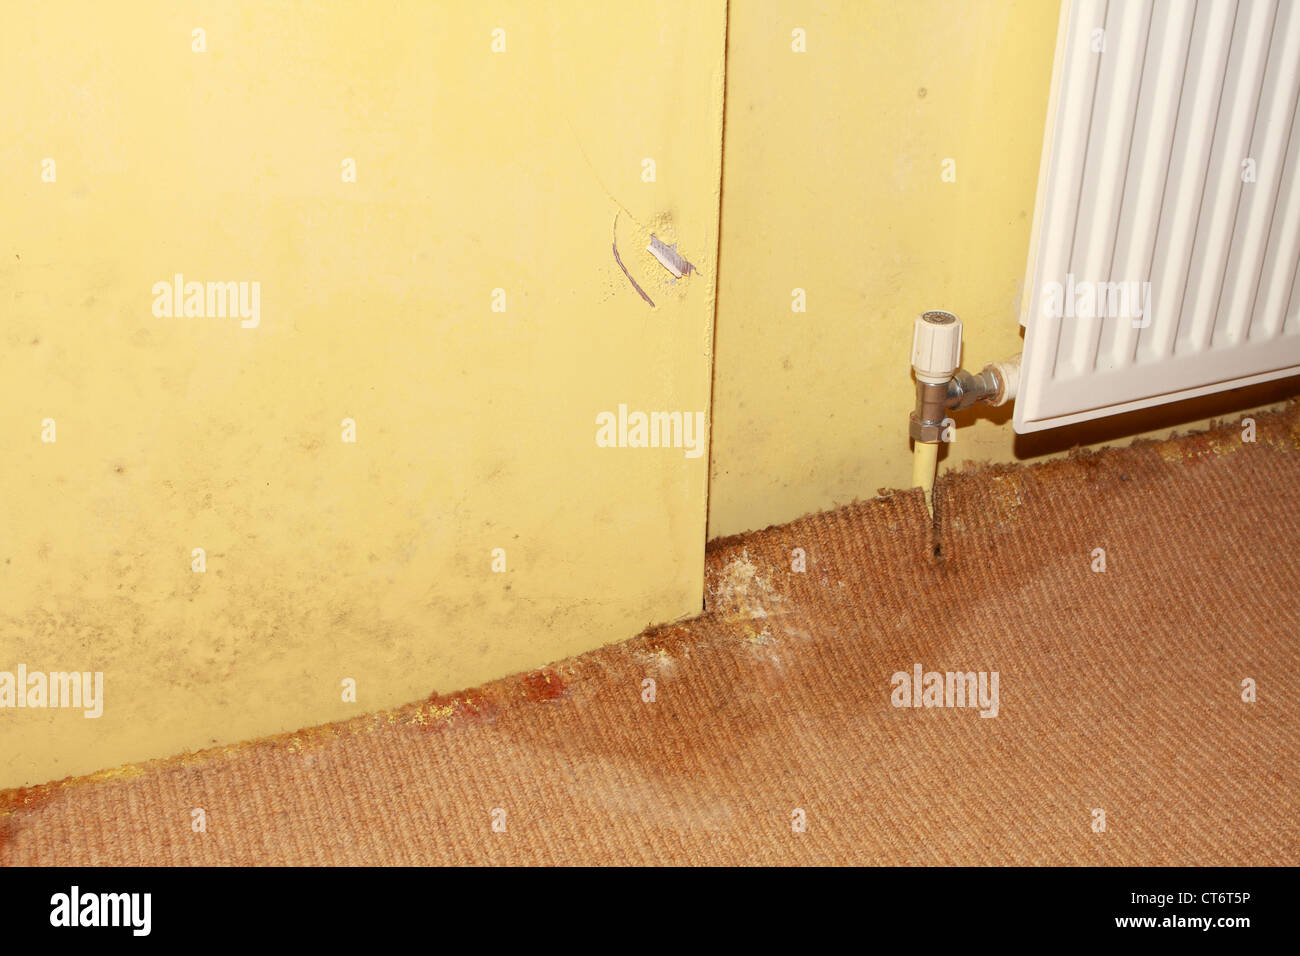 the effect of a leaking pipe showing carpet damage and rising damp in the walls - Stock Image